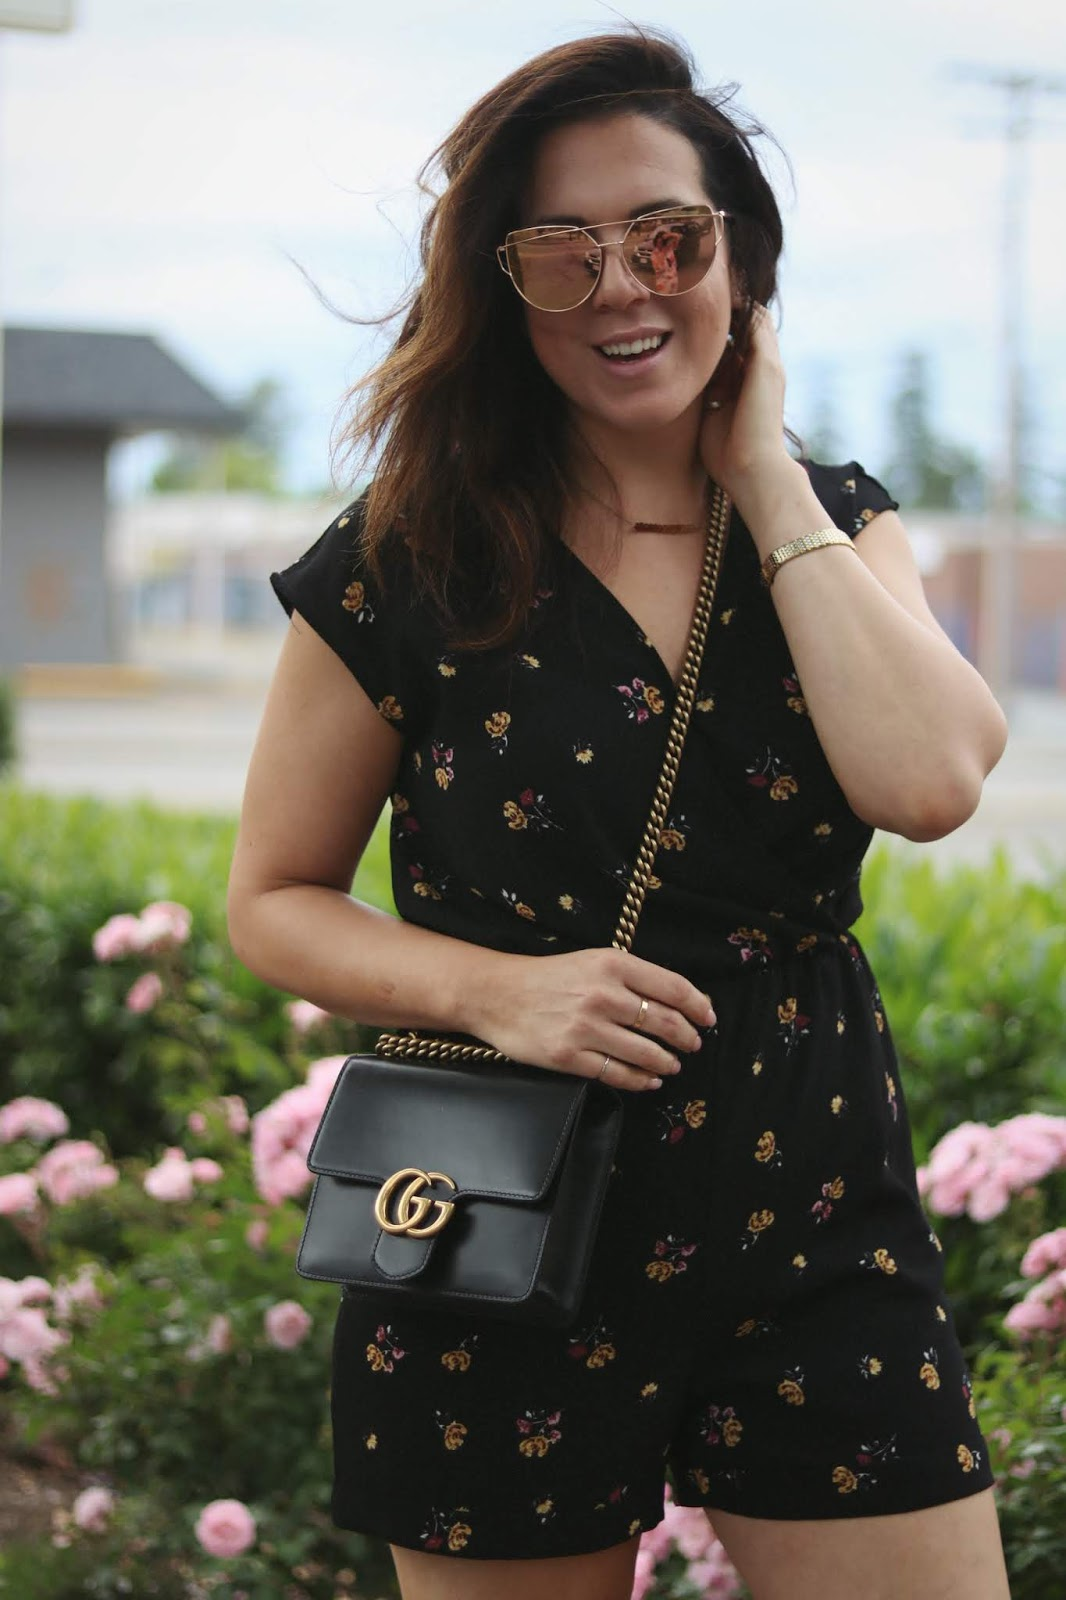 Floral romper outfit idea le chateau summer look flash frame sunglasses blush vans outfit vancouver fashion blogger aleesha harris